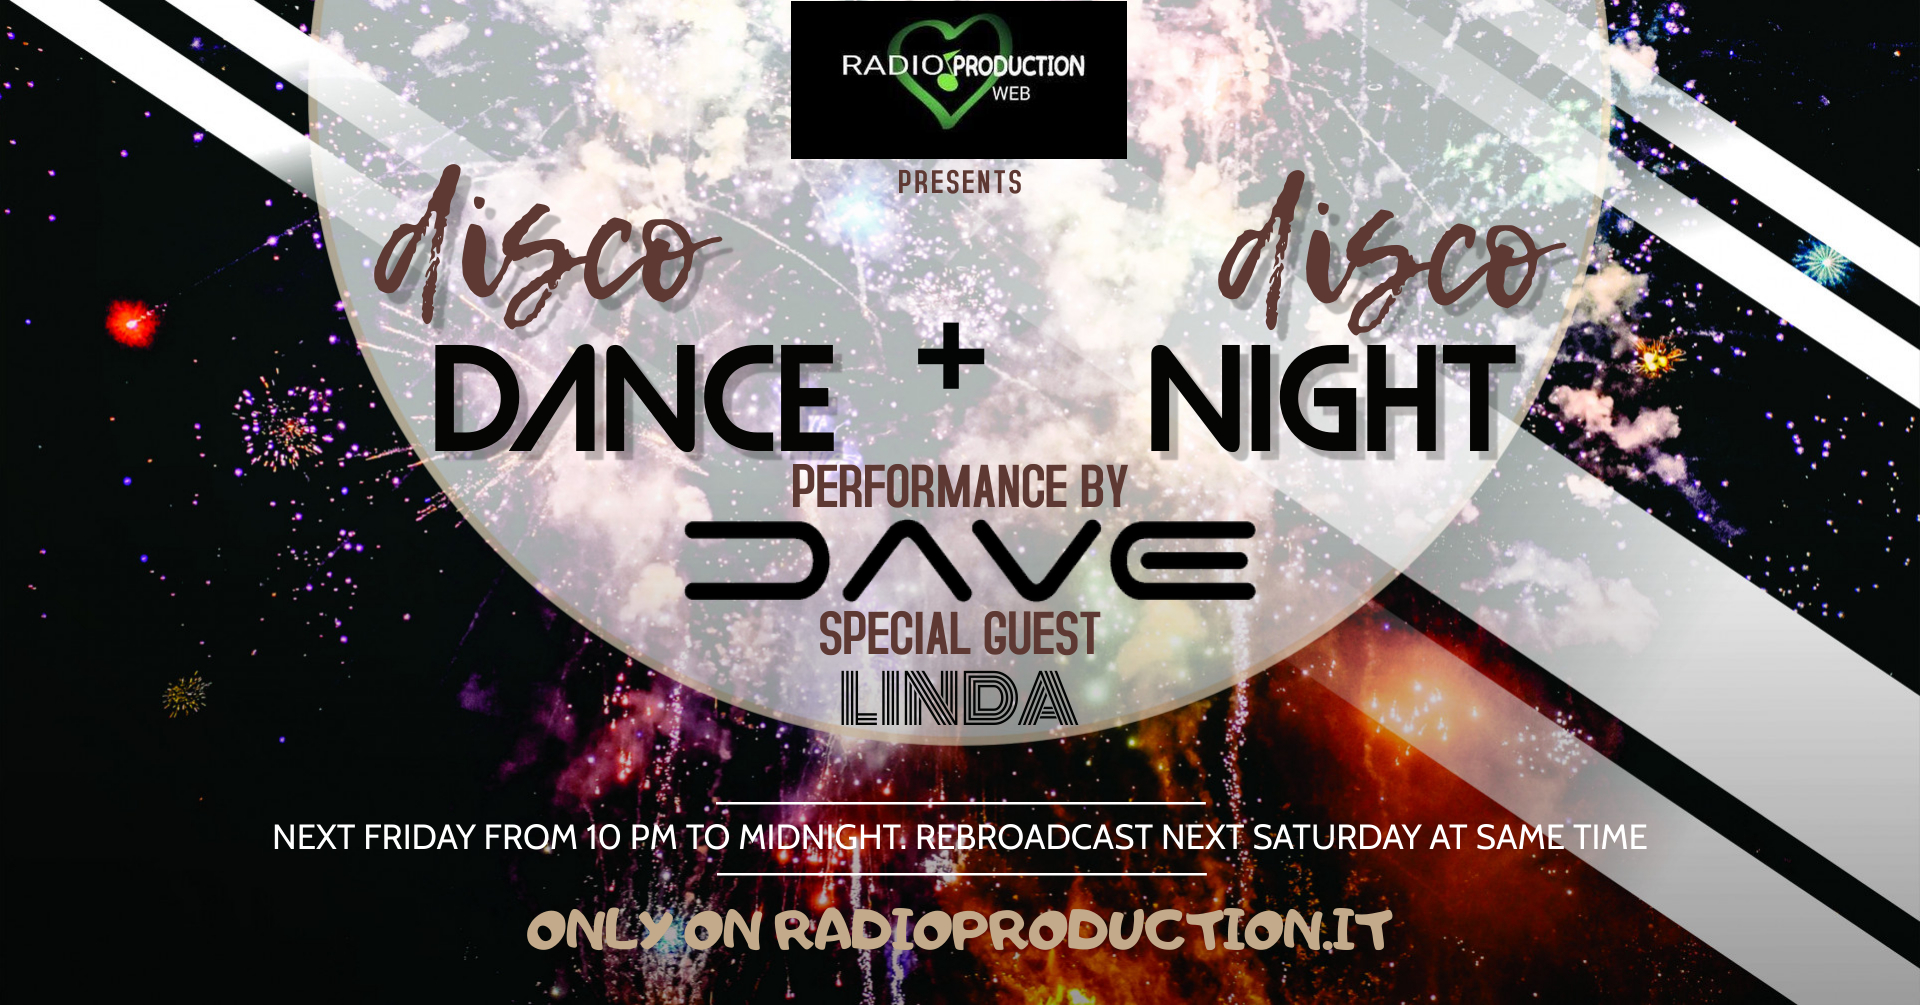 DiscoDANCE + DiscoNIGHT - A long night with Dj Dave & special guest Linda